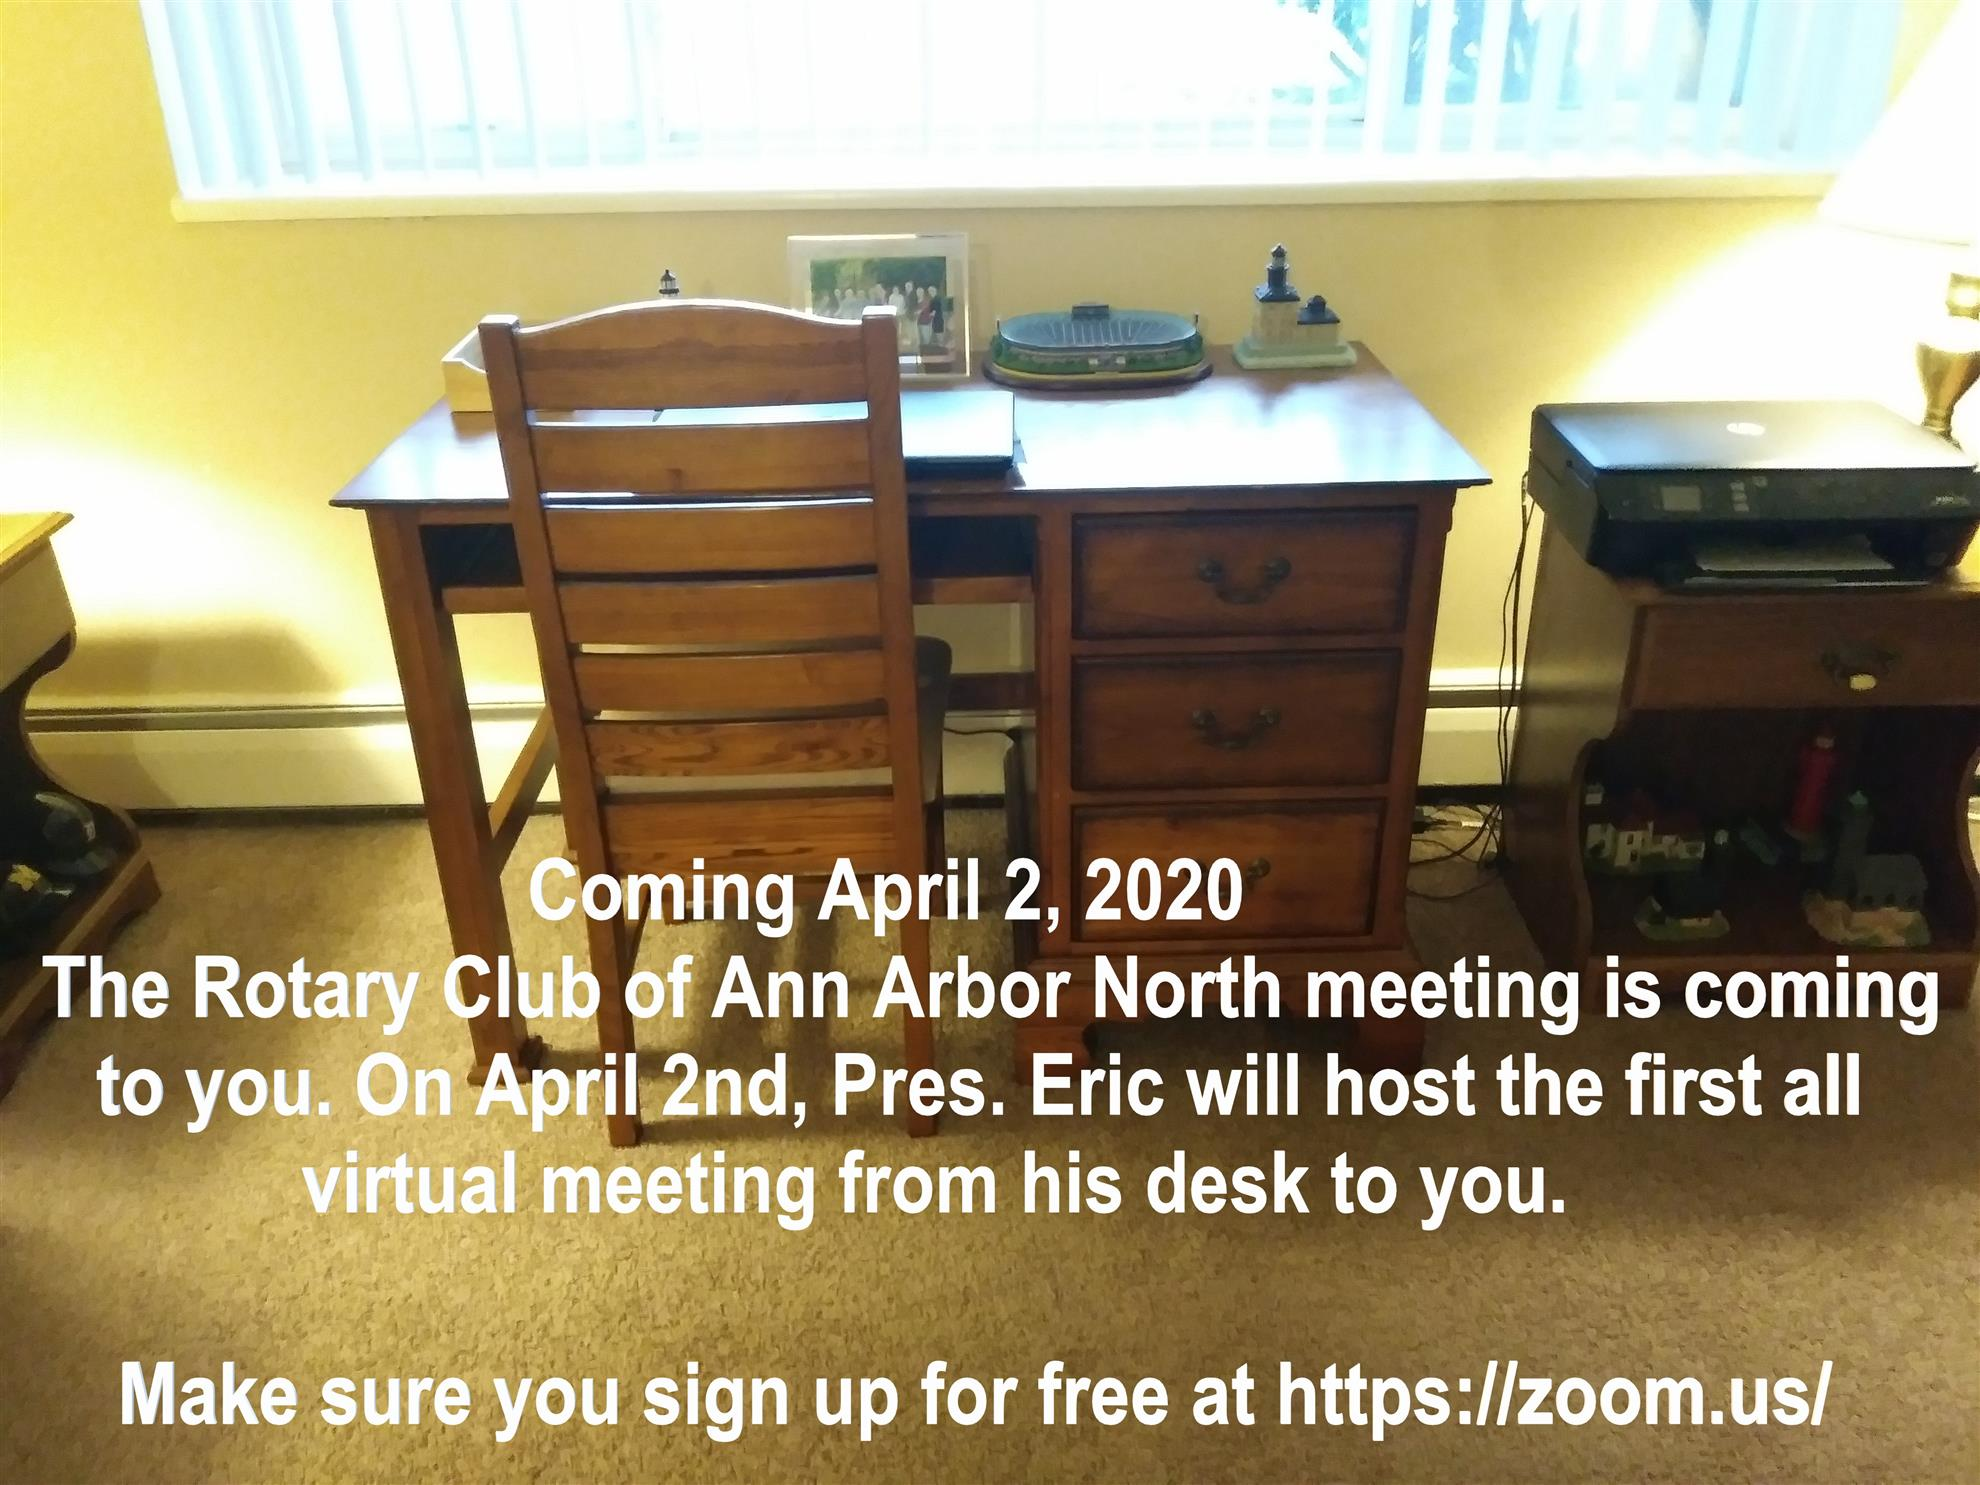 mens office decorating ideas.htm stories rotary club of ann arbor north  stories rotary club of ann arbor north